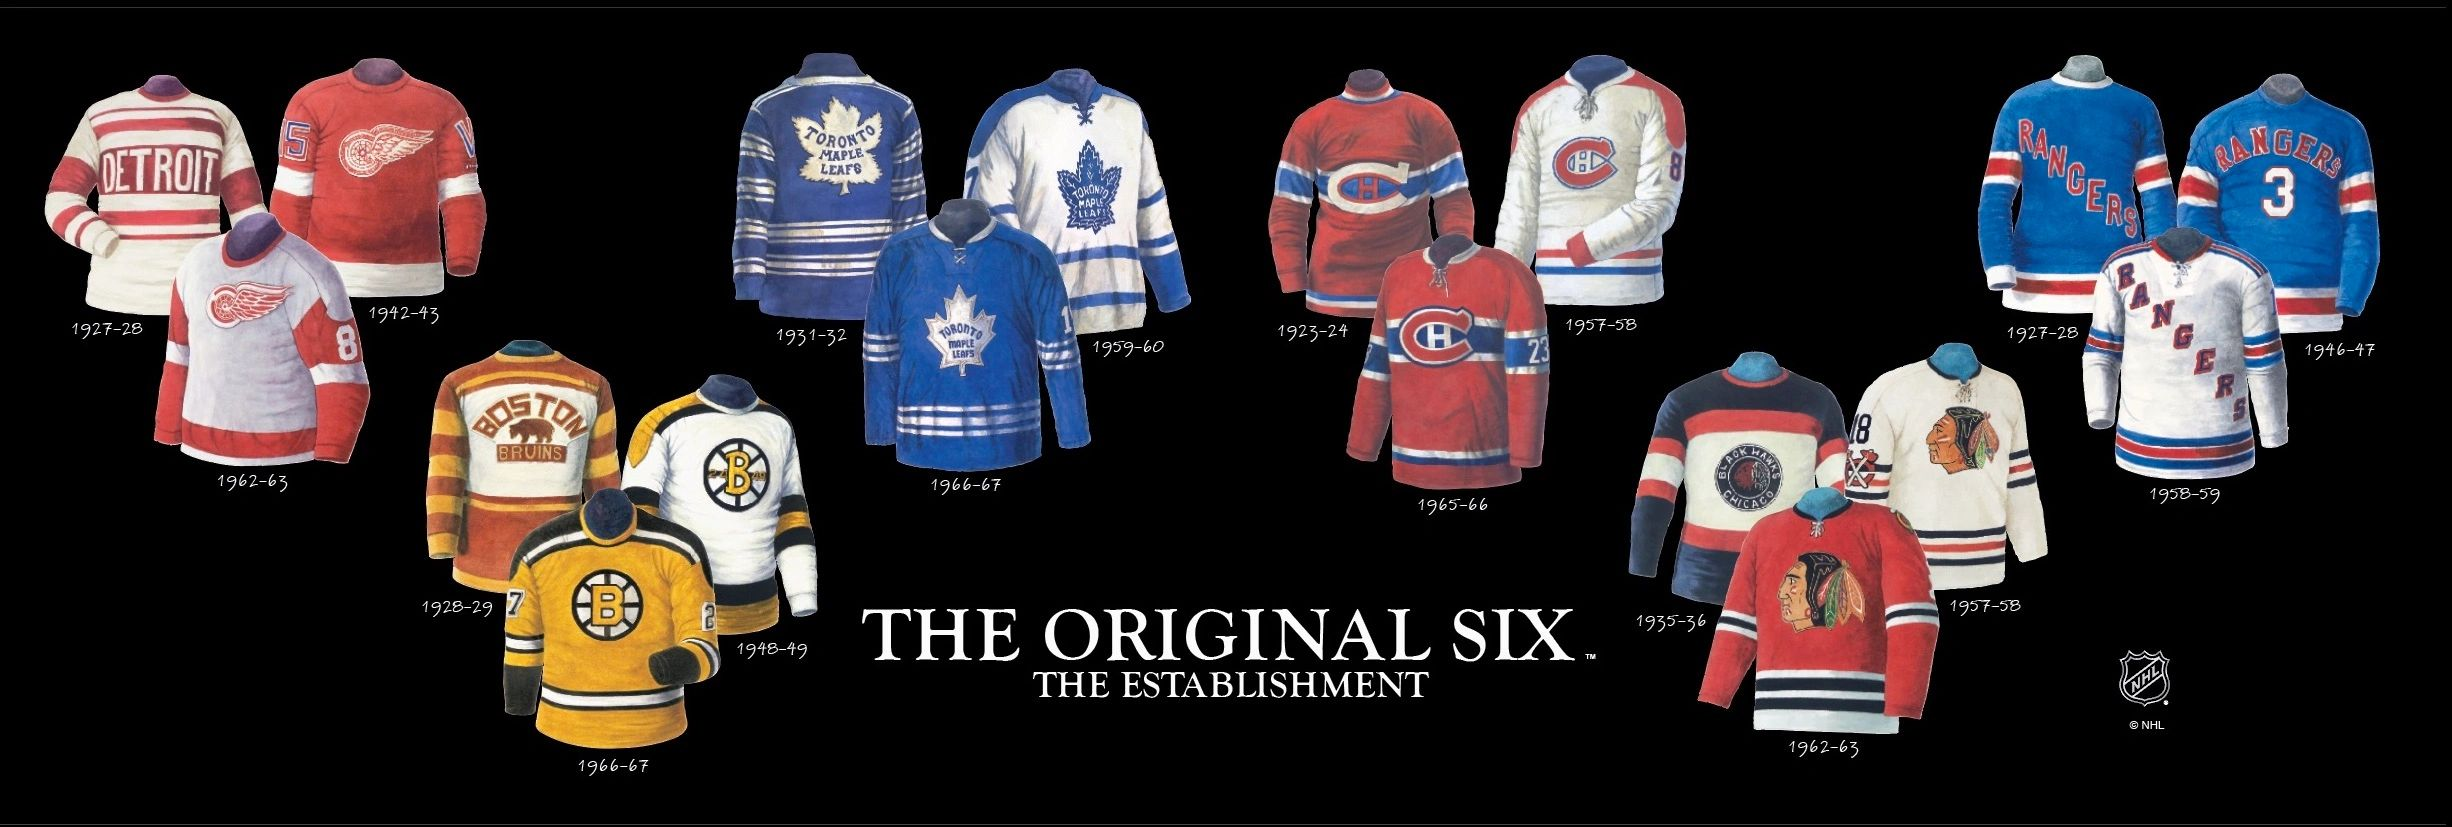 "This ""Original Six Jerseys"" poster is one of the best selling posters in Canadian history."